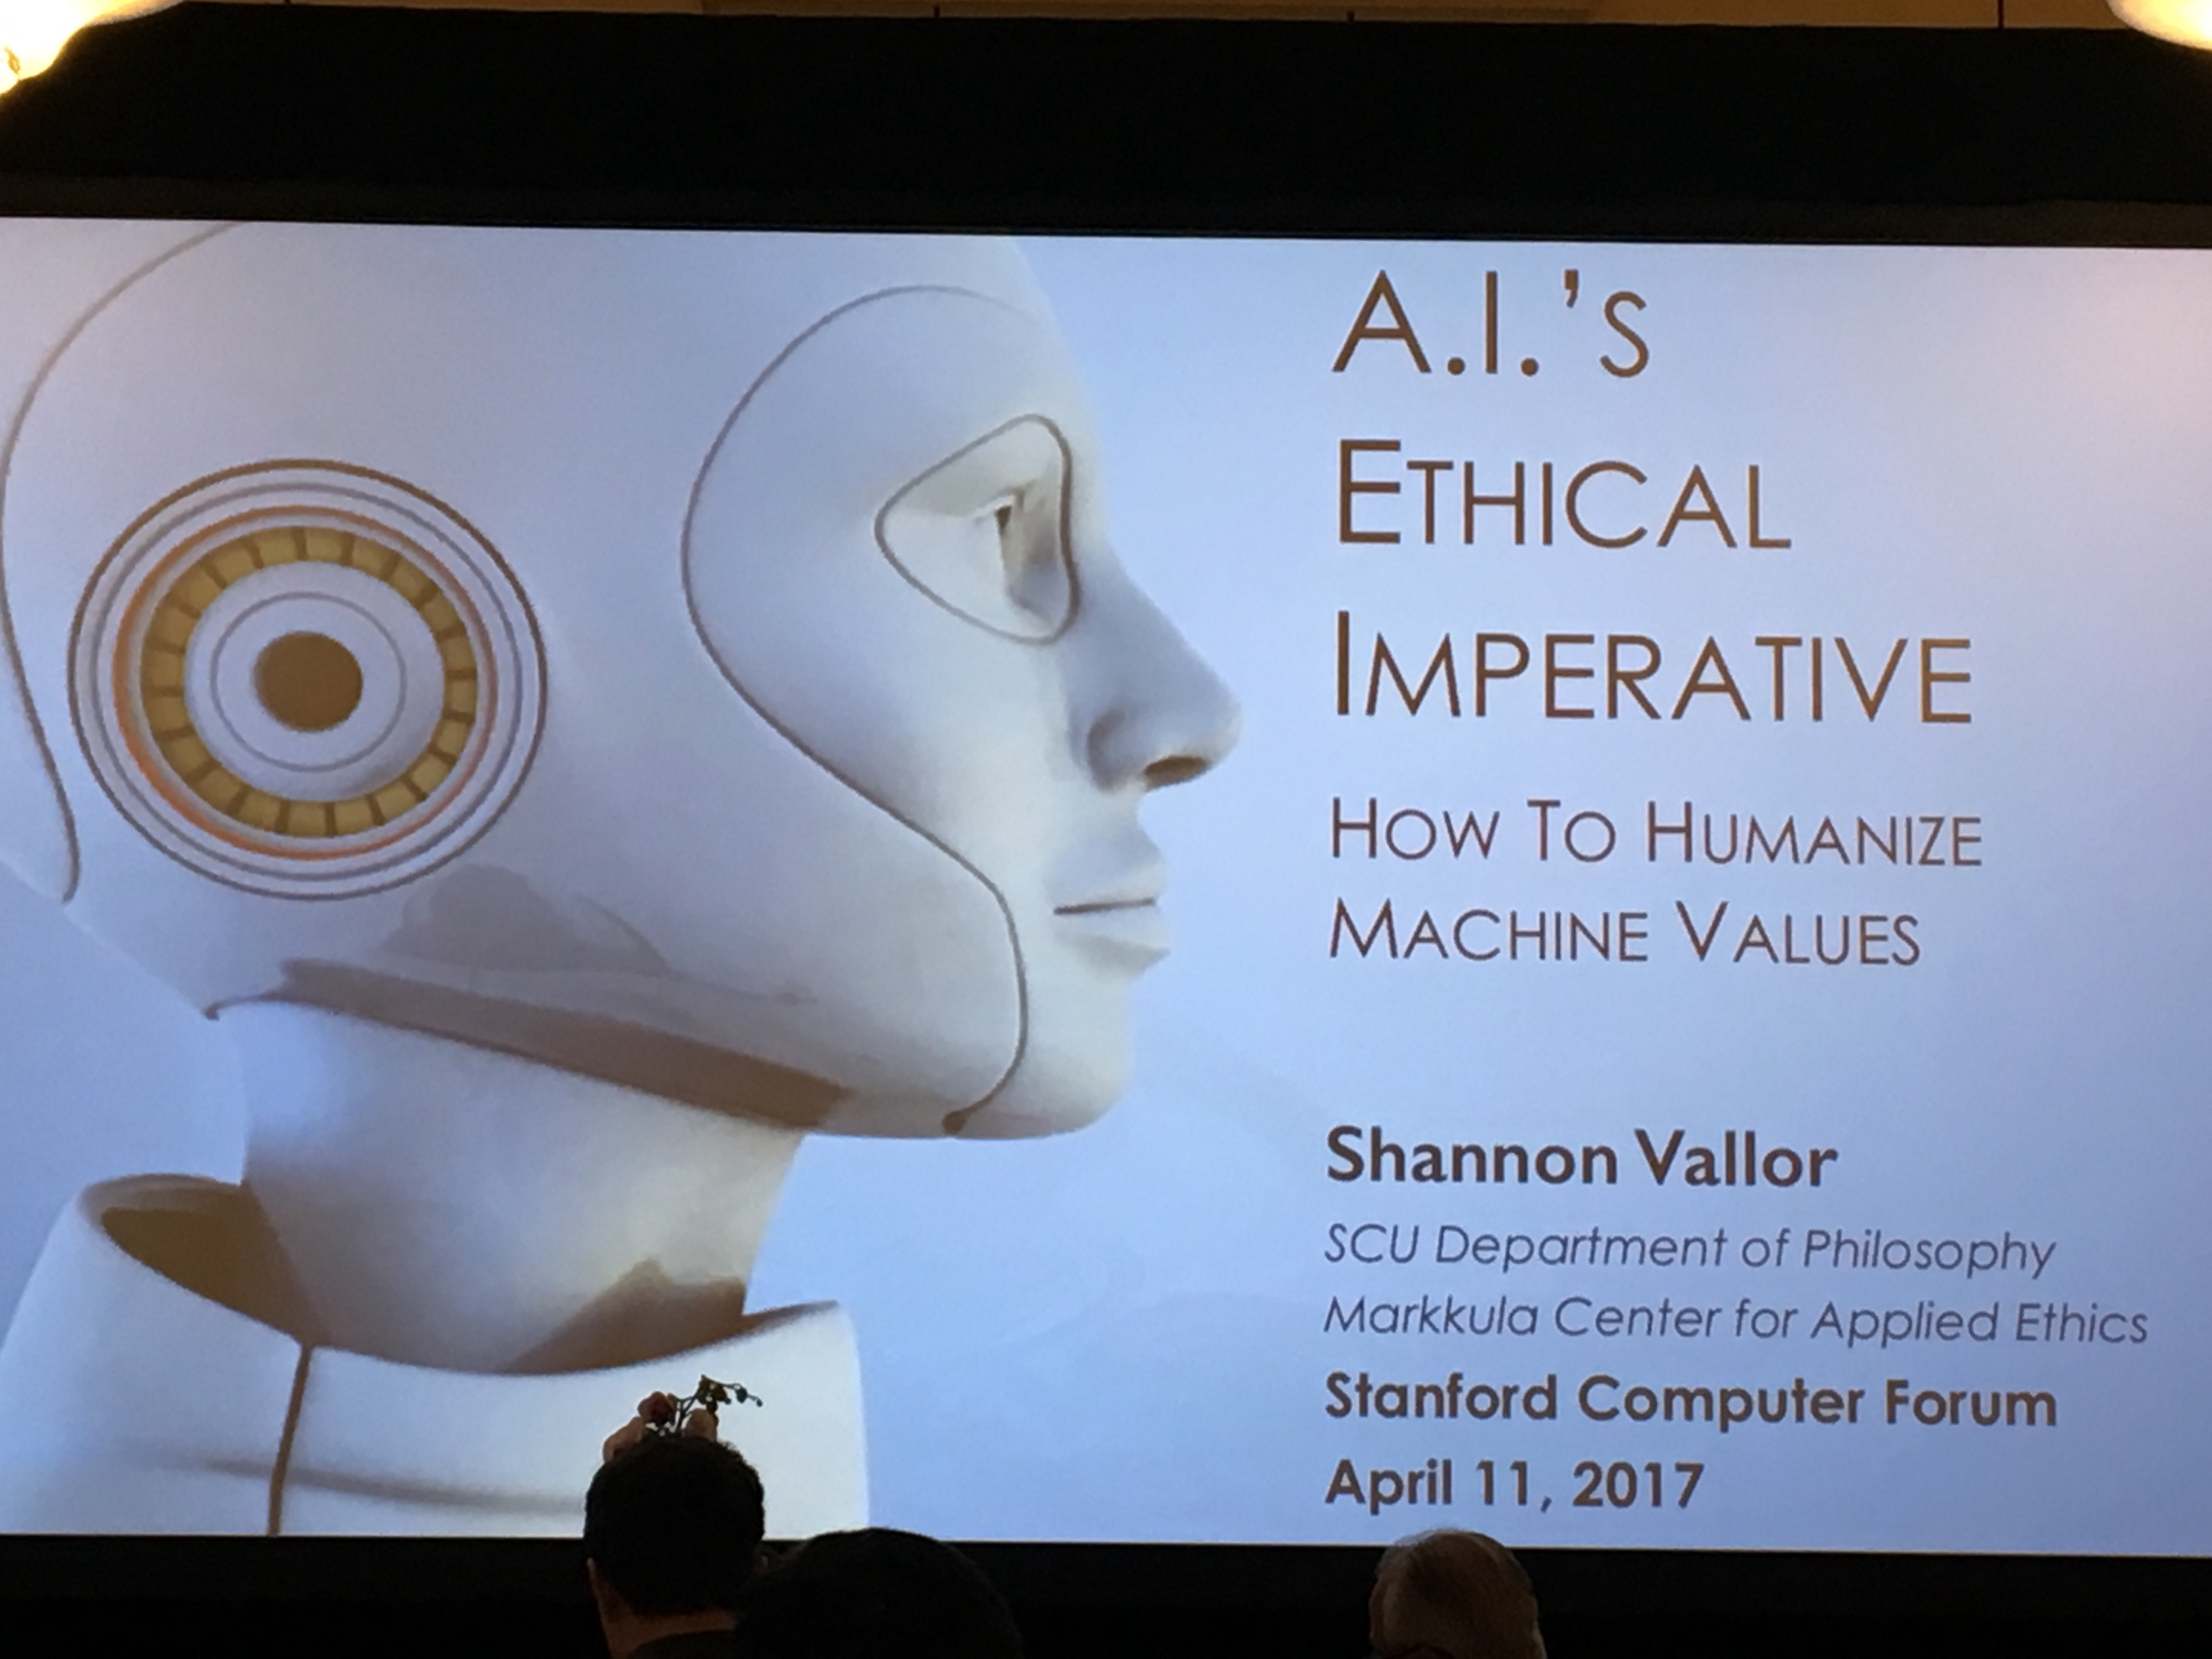 AI's Ethical Imperative @ Stanford Computer Forum - Becoming